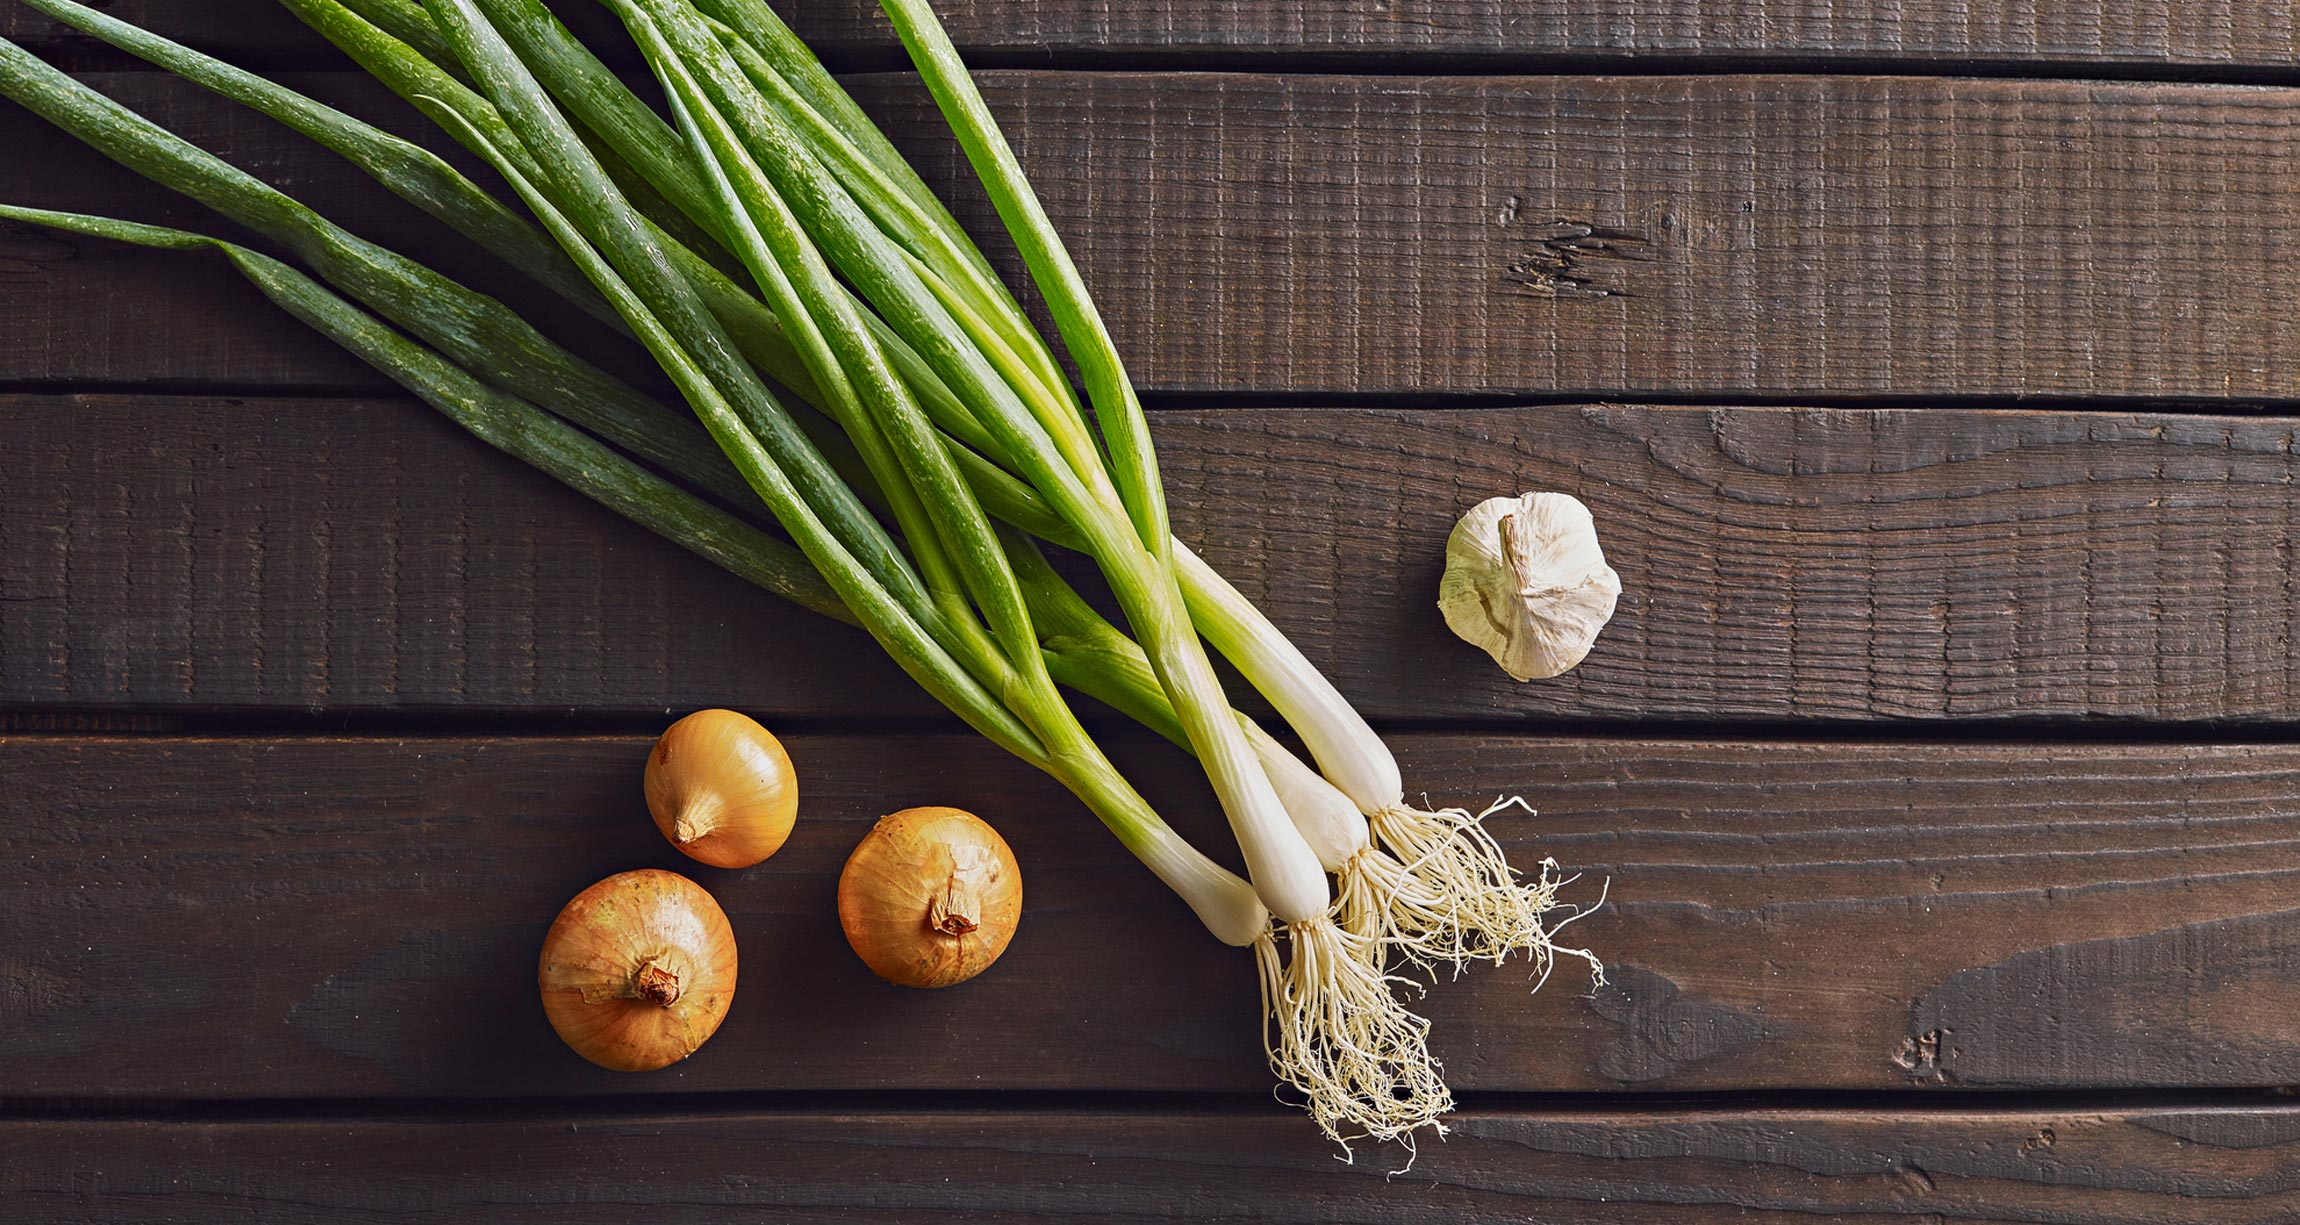 Cancer Fighting Foods Top 10 Anti Cancer Vegetables